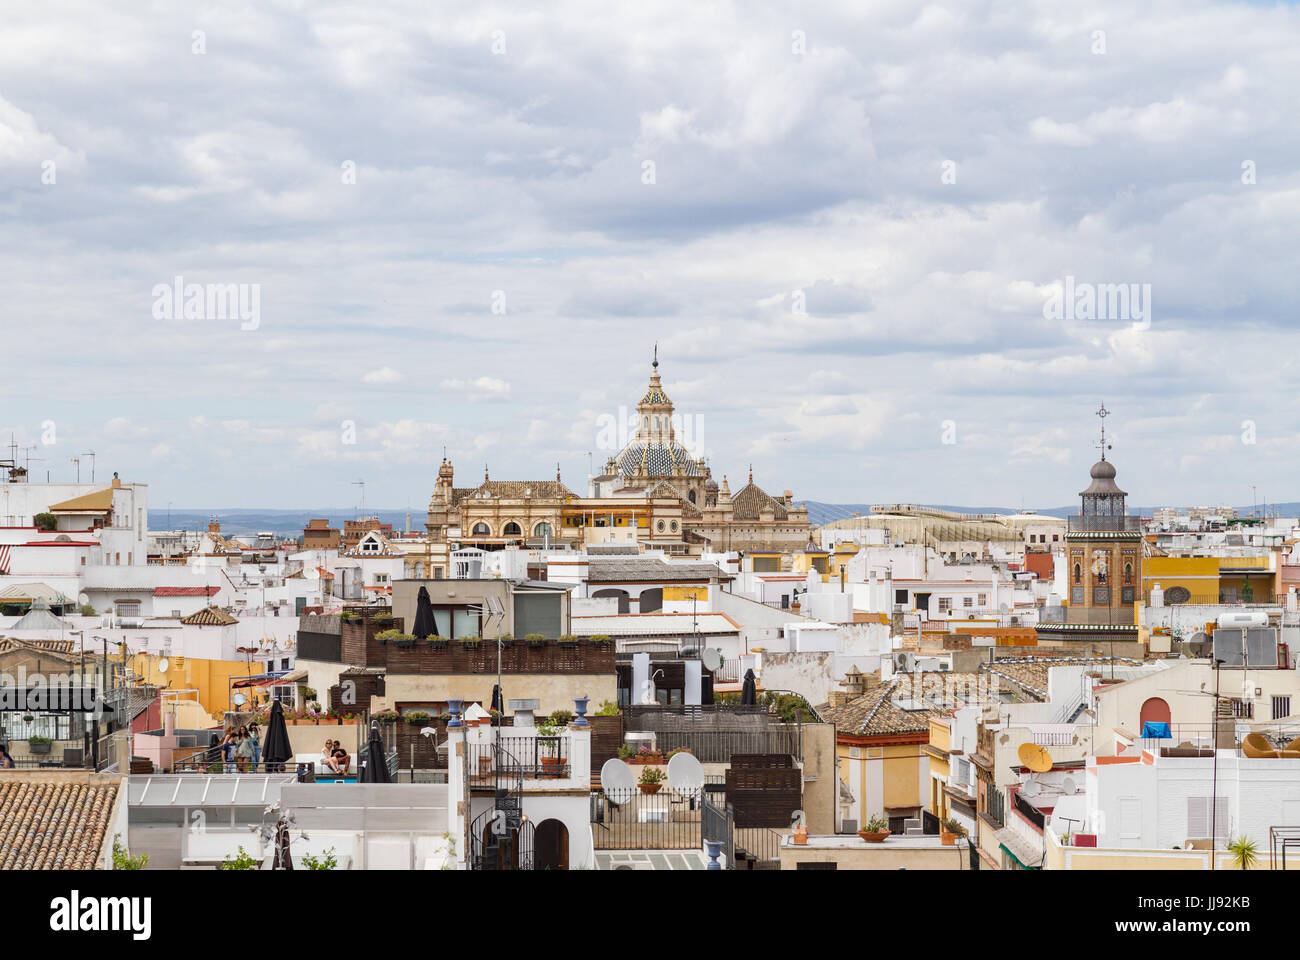 View of Seville with a focus on Seville's Church of San Luis de Los Franceses, an example of Baroque architecture. - Stock Image